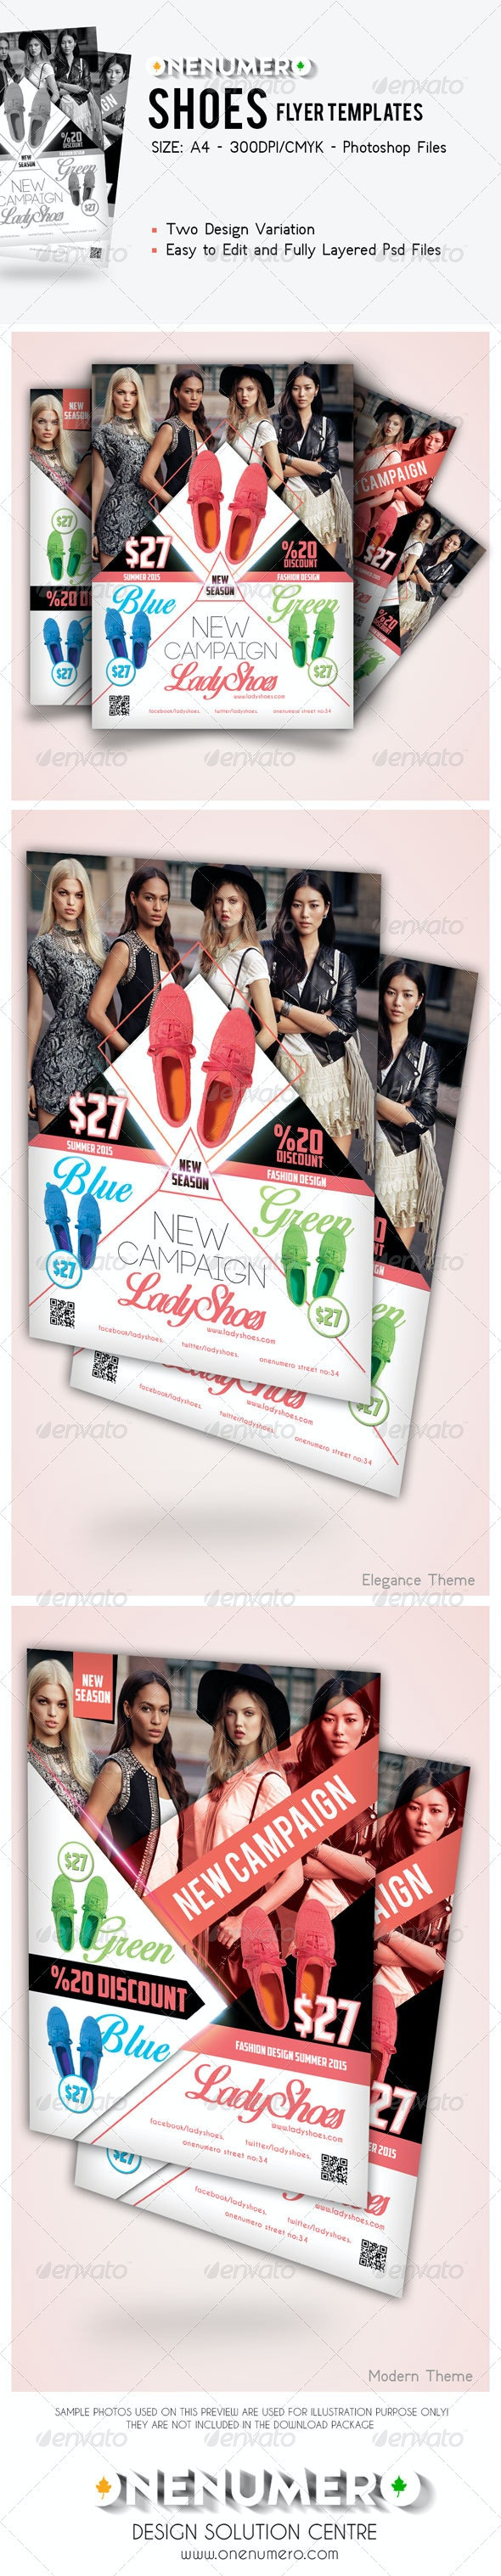 Shoes Flyer Templates - Commerce Flyers